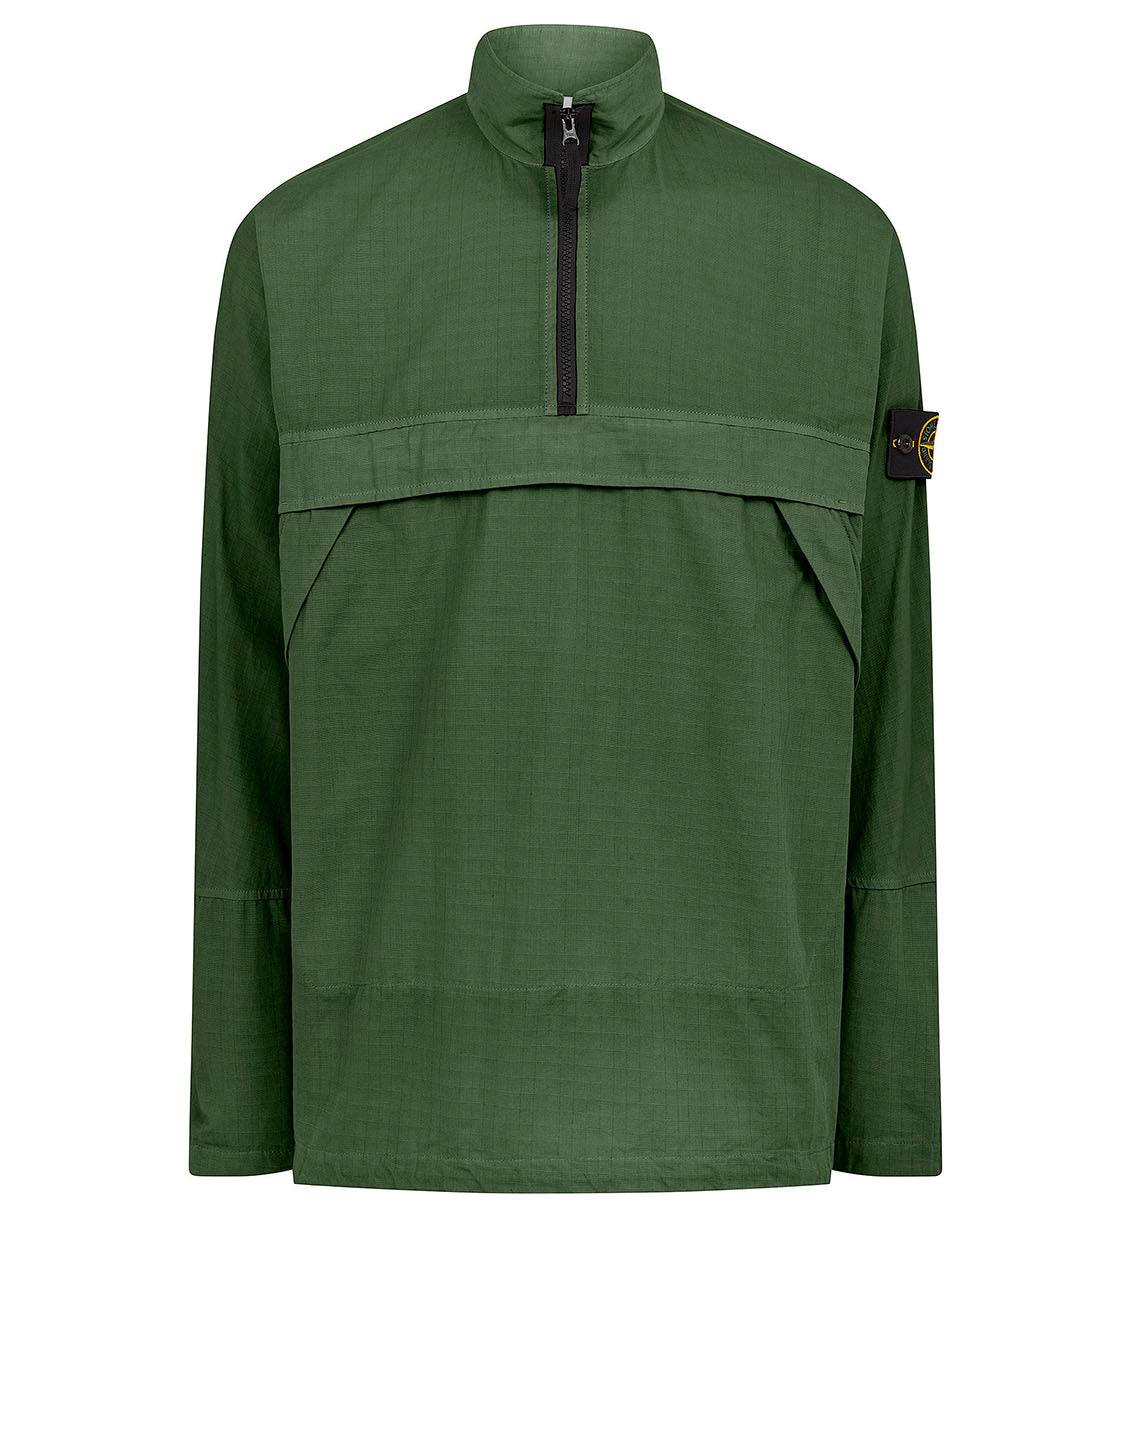 10802 Cotton Ripstop Overshirt in Dark Forest